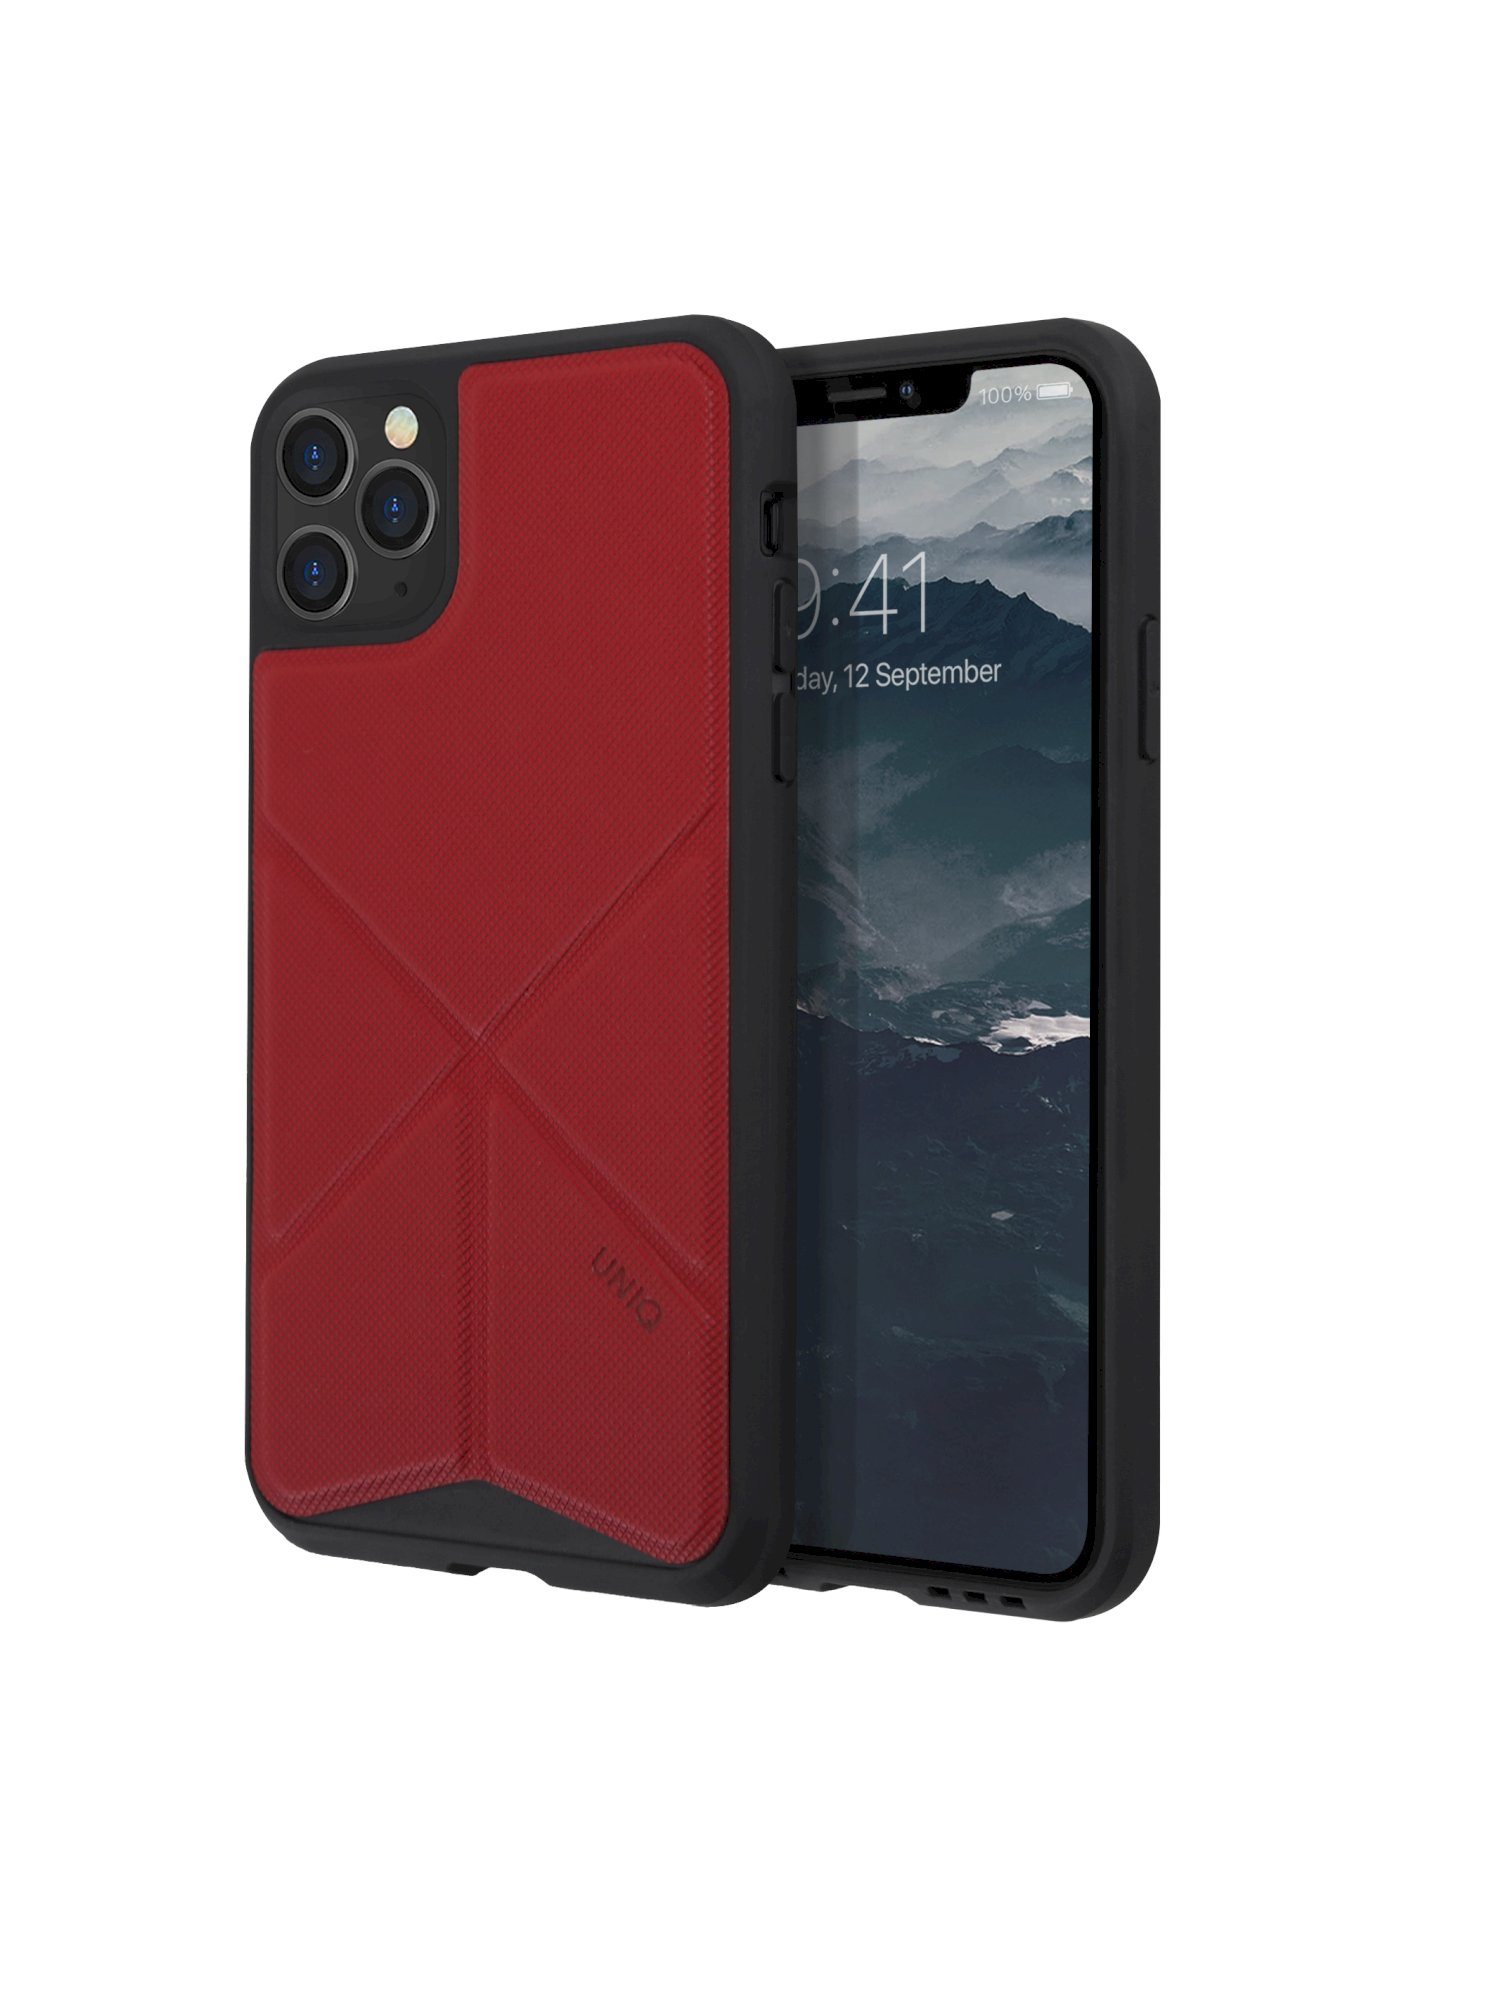 iPhone 11 Pro Max, case transforma, stand up fury racer, red